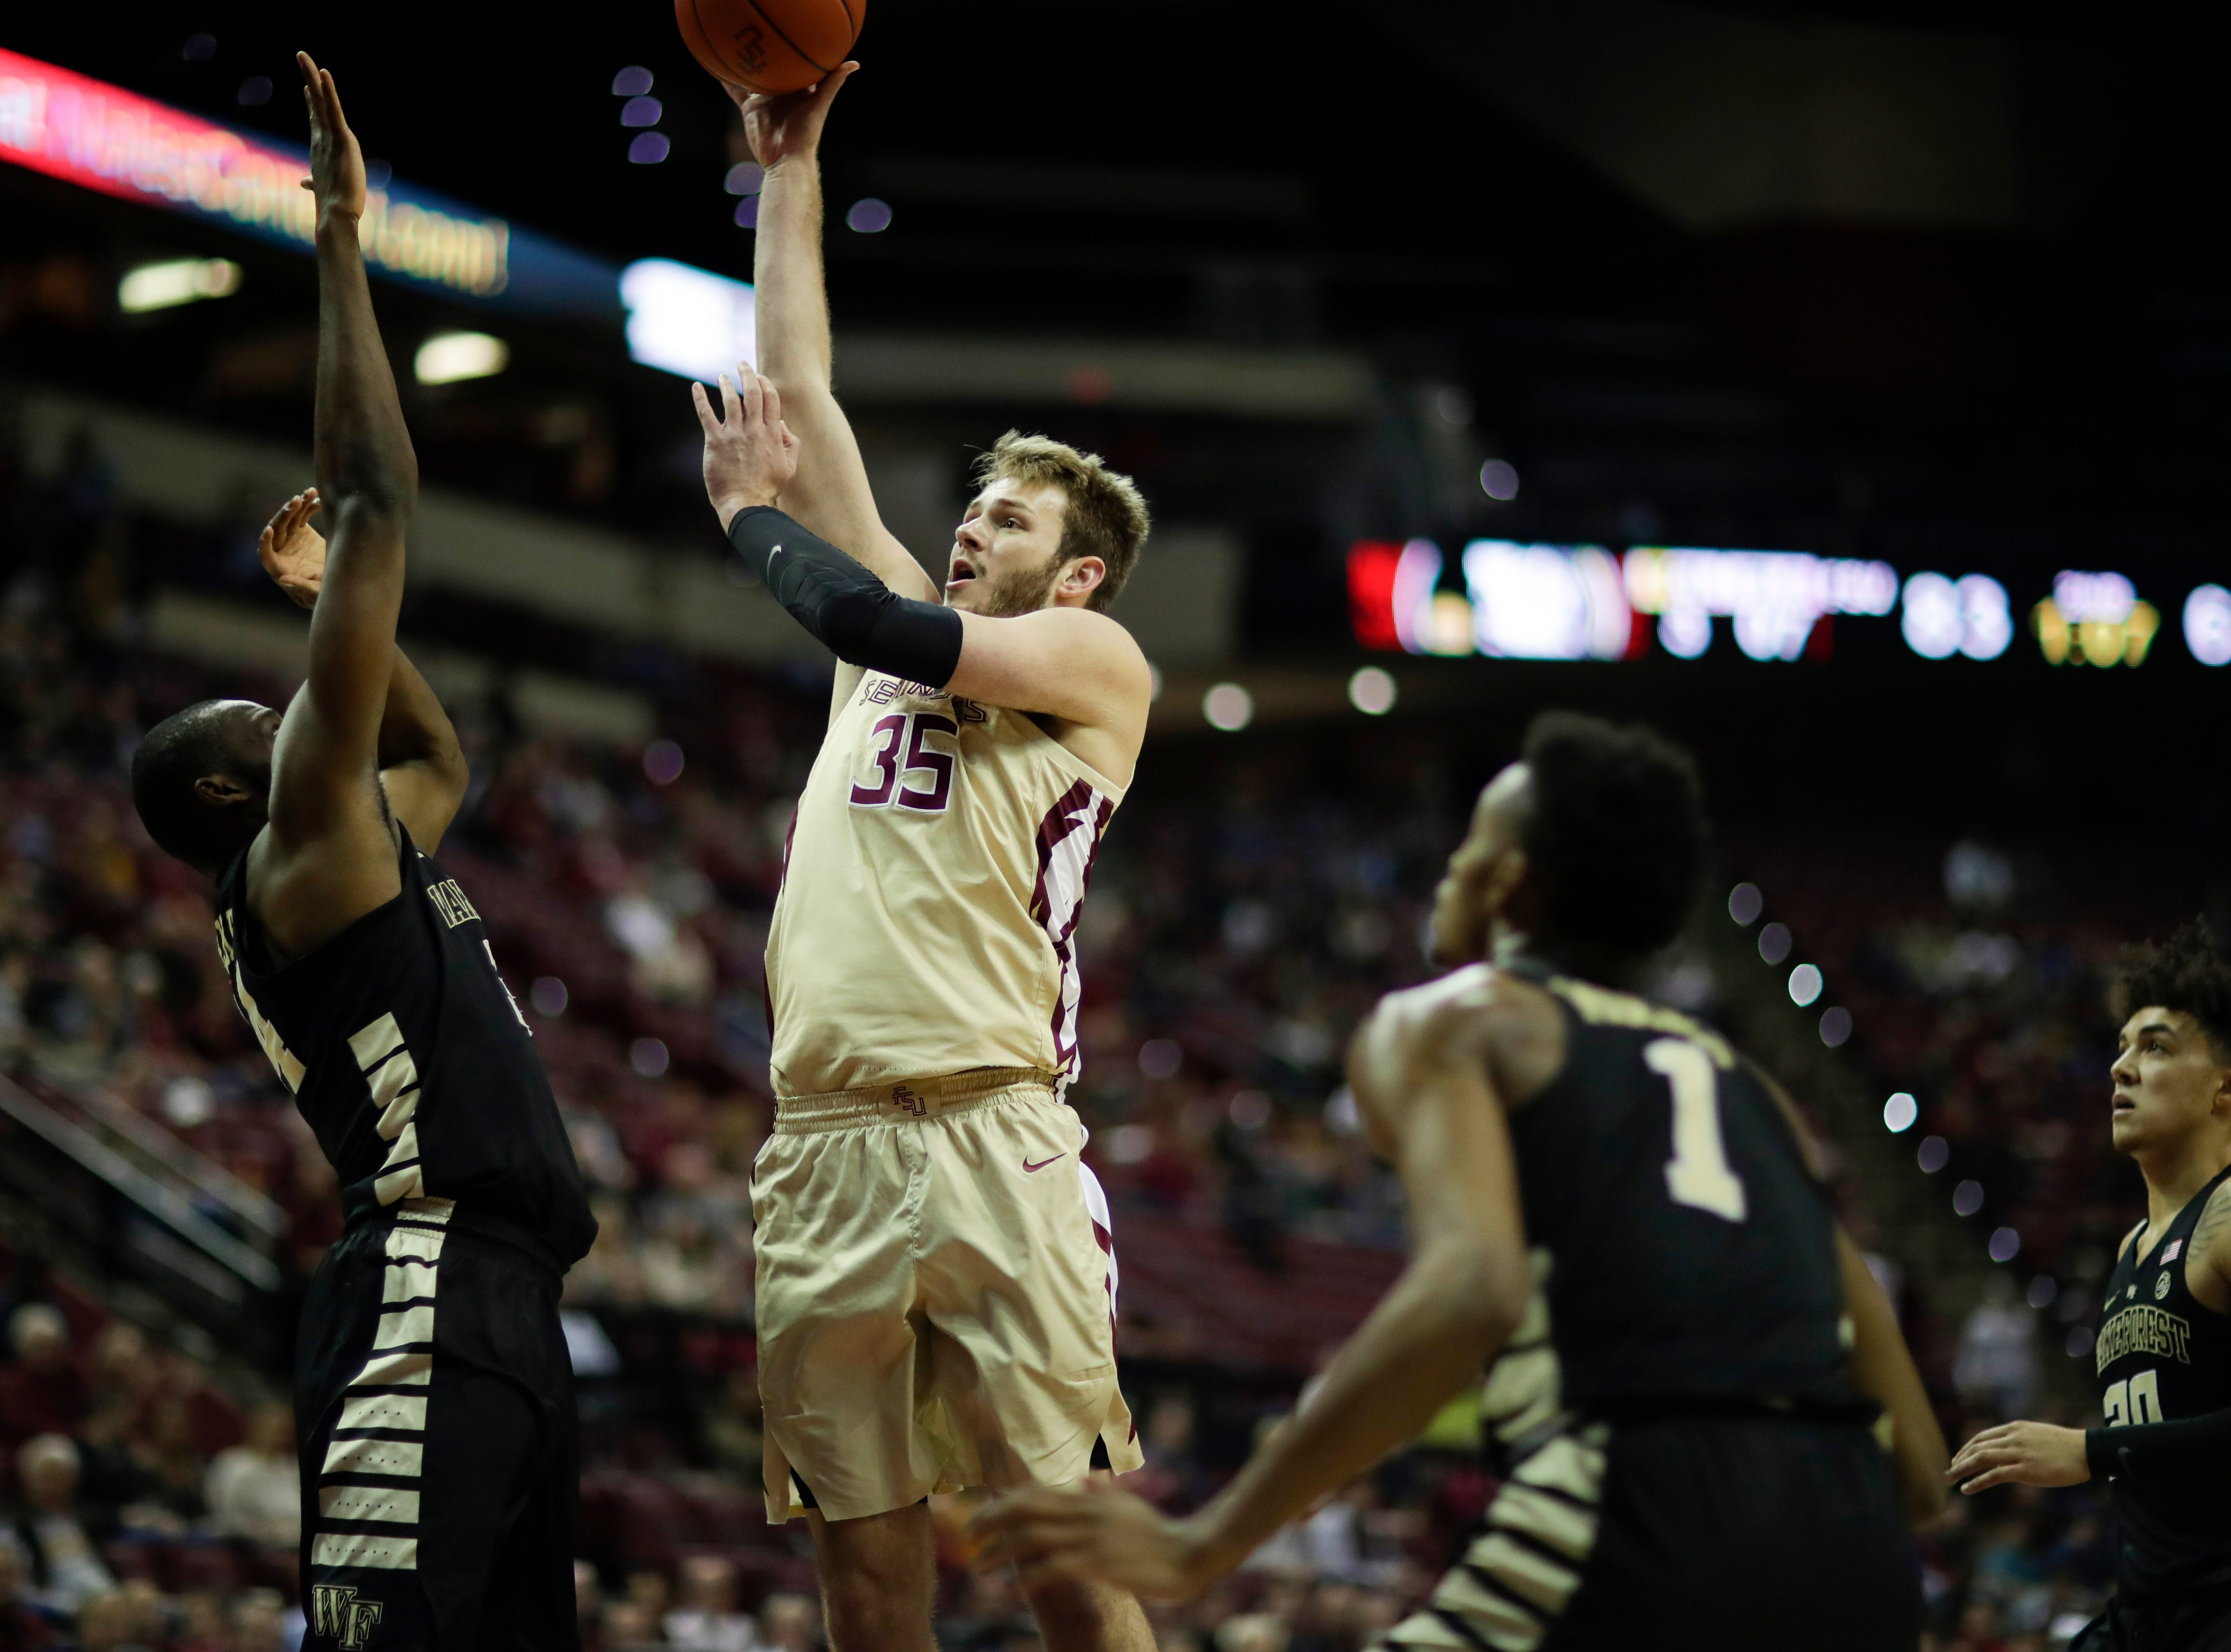 Almost immediately after coming off the bench at the end of the second half, Florida State Seminoles forward Harrison Prieto (35) puts in a shot during a game between FSU and Wake Forest at the Donald L. Tucker Civic Center Wednesday, Feb. 13, 2019.